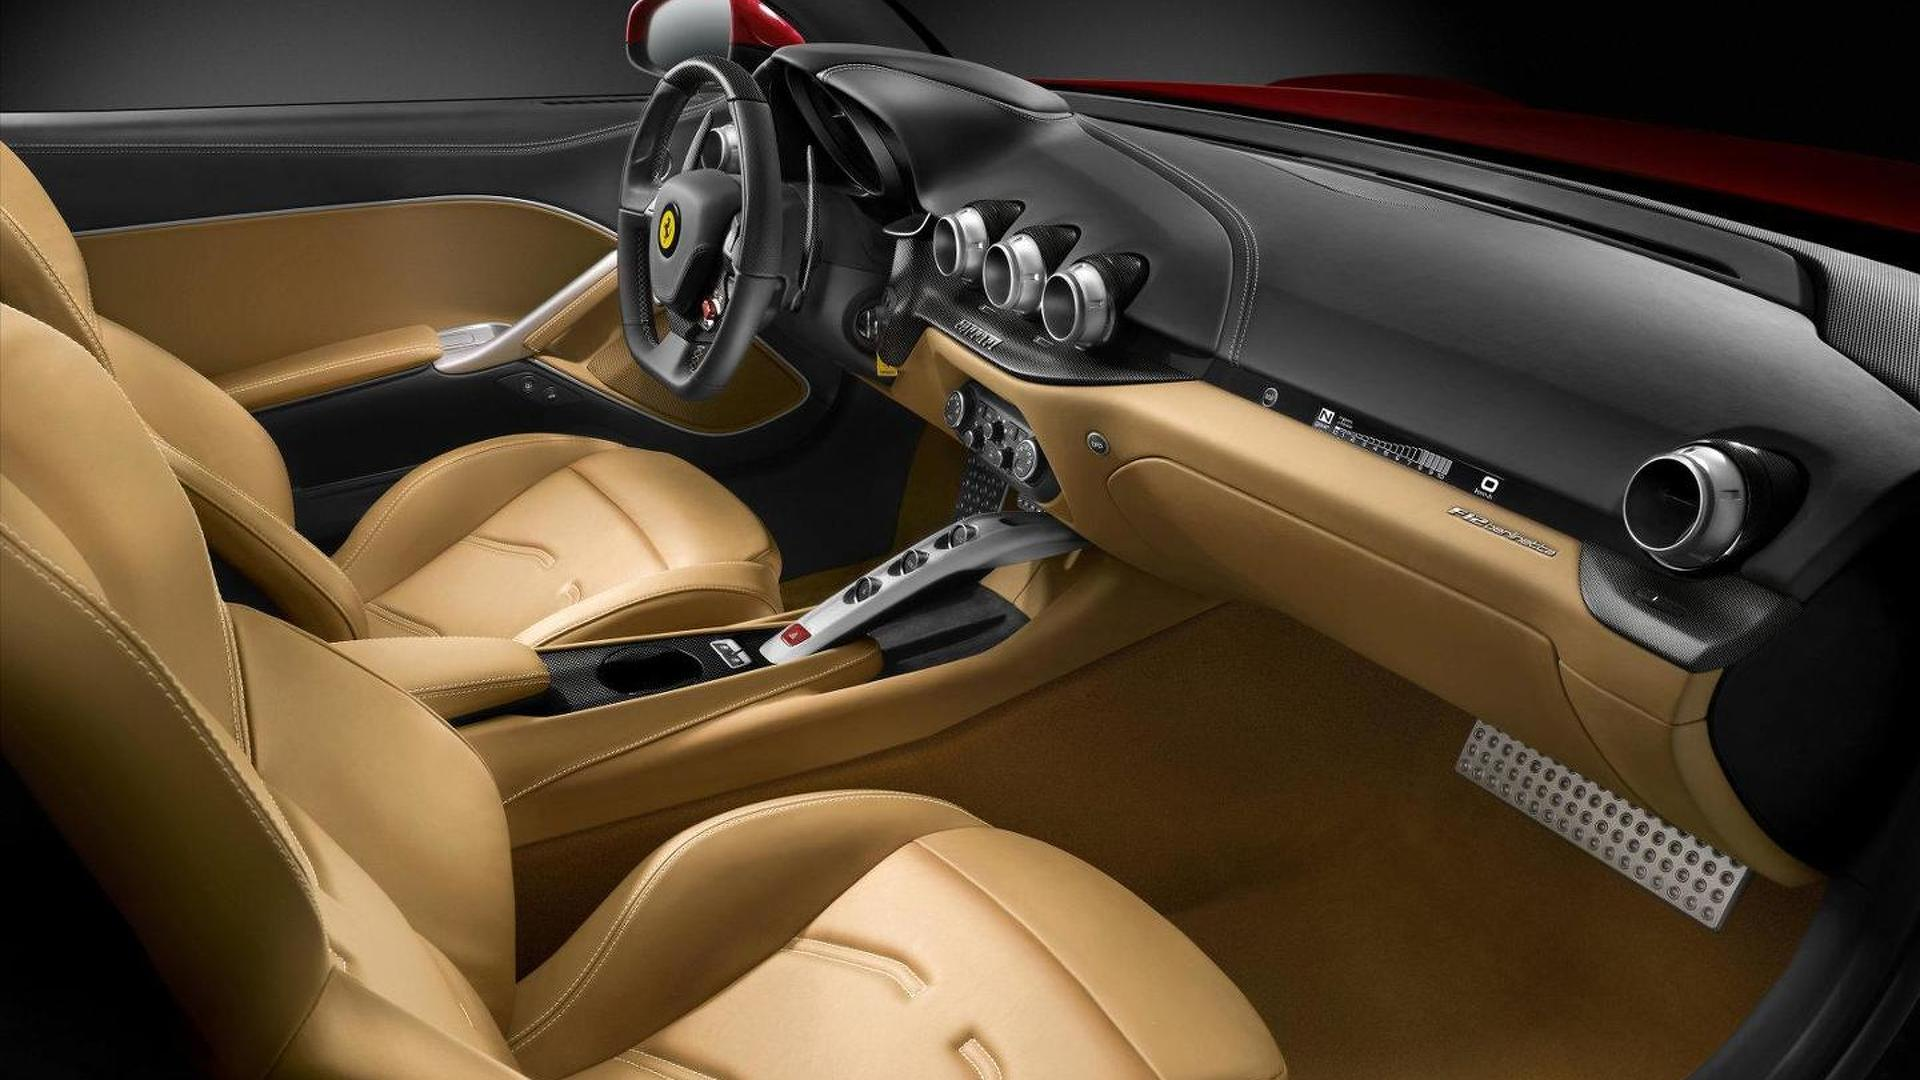 F12 Berlinetta Announced The Fastest Ferrari Ever Built Videos